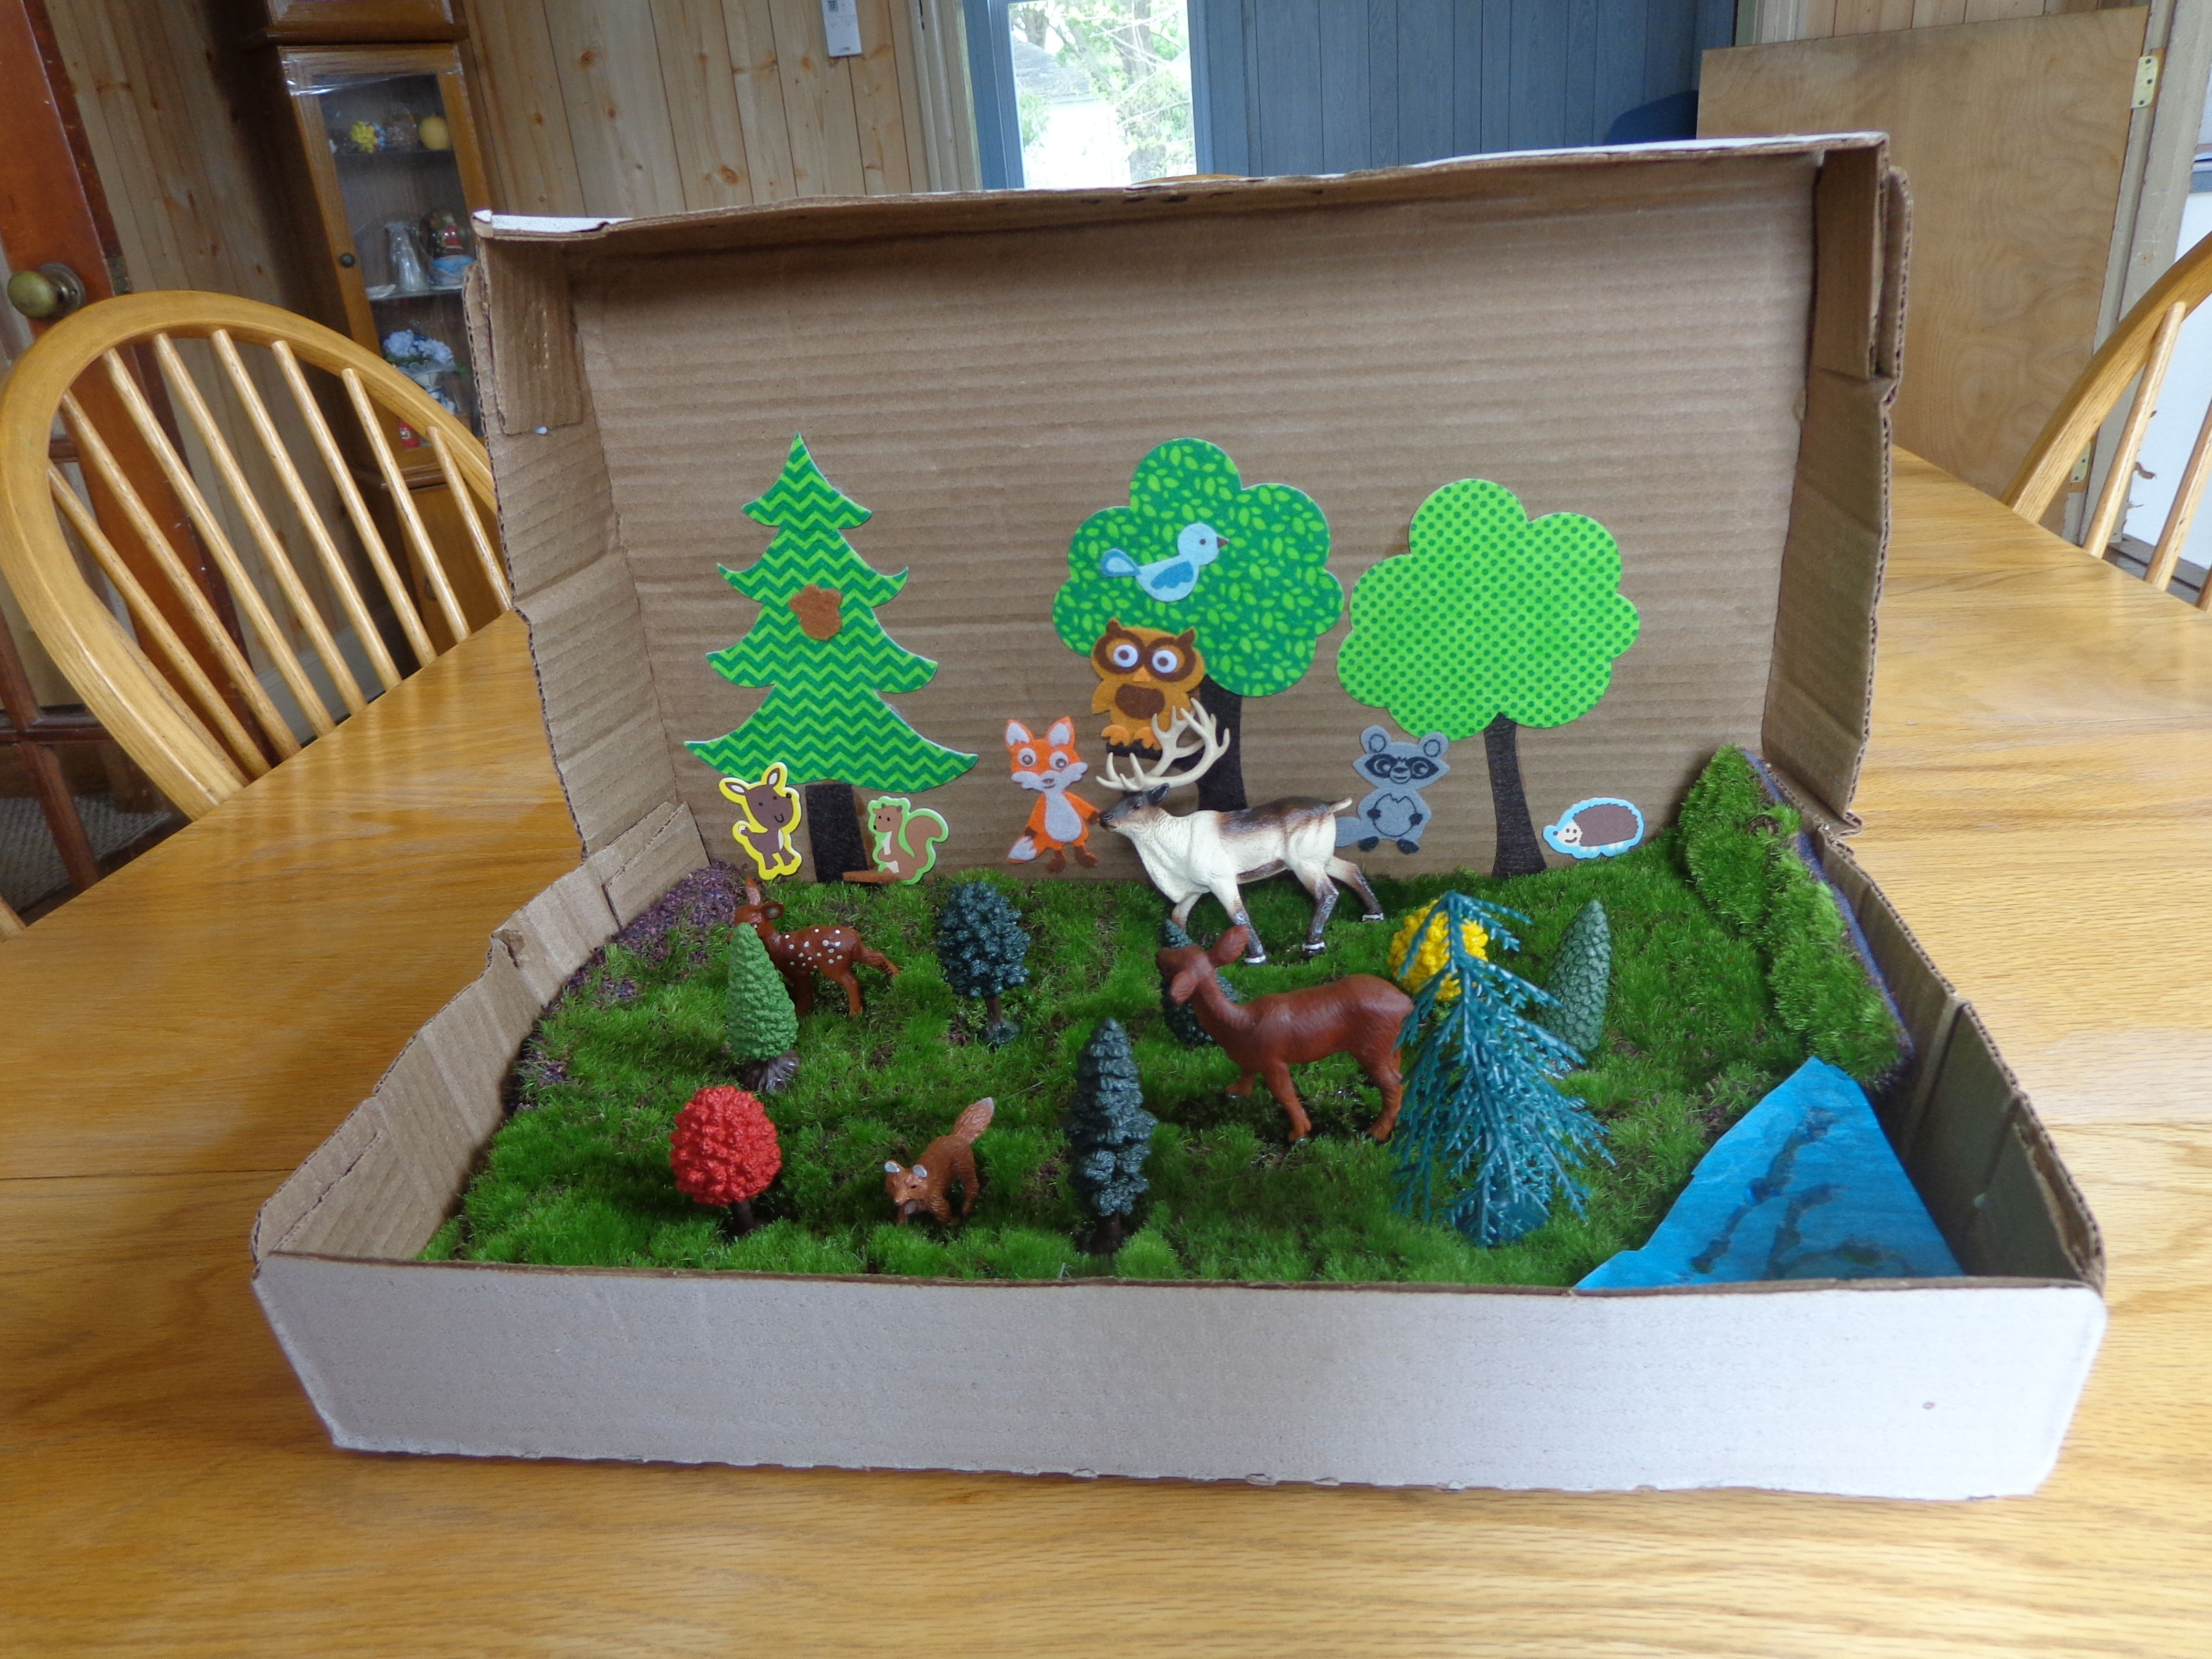 A Forest Diorama Craft Project That S Fun For The Family